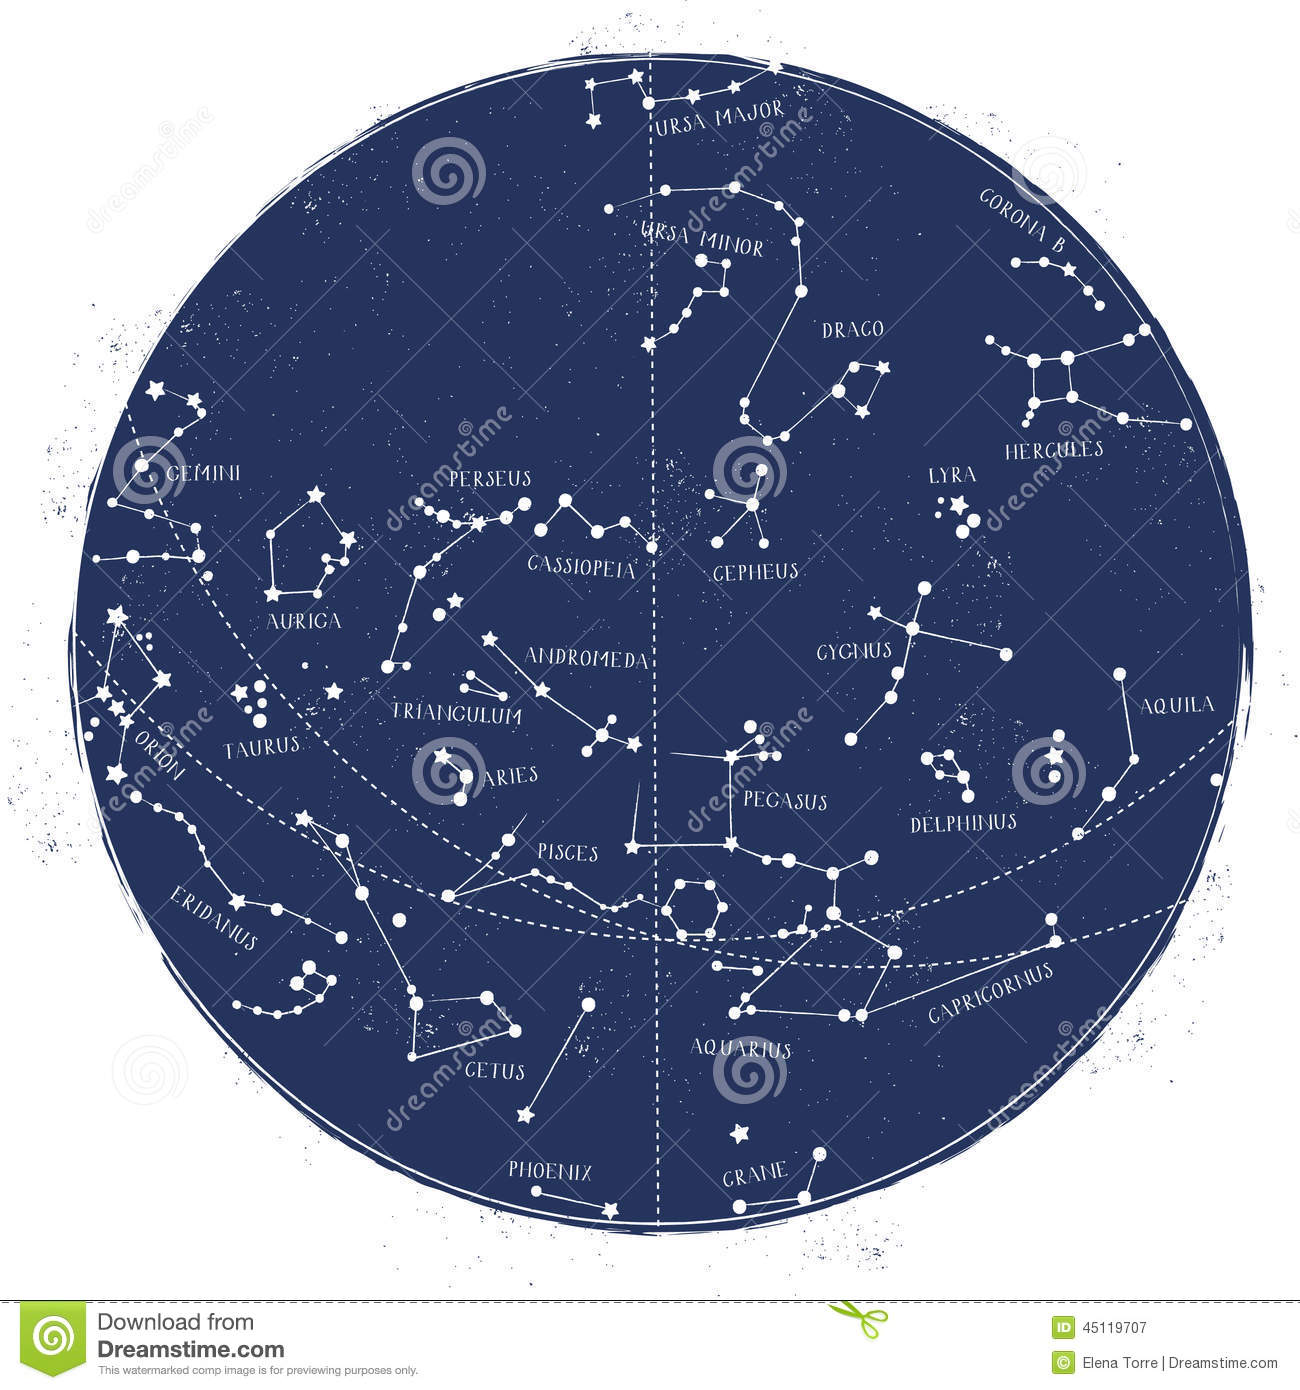 Astronomical Celestial Map of northern hemisphere, vintage style.